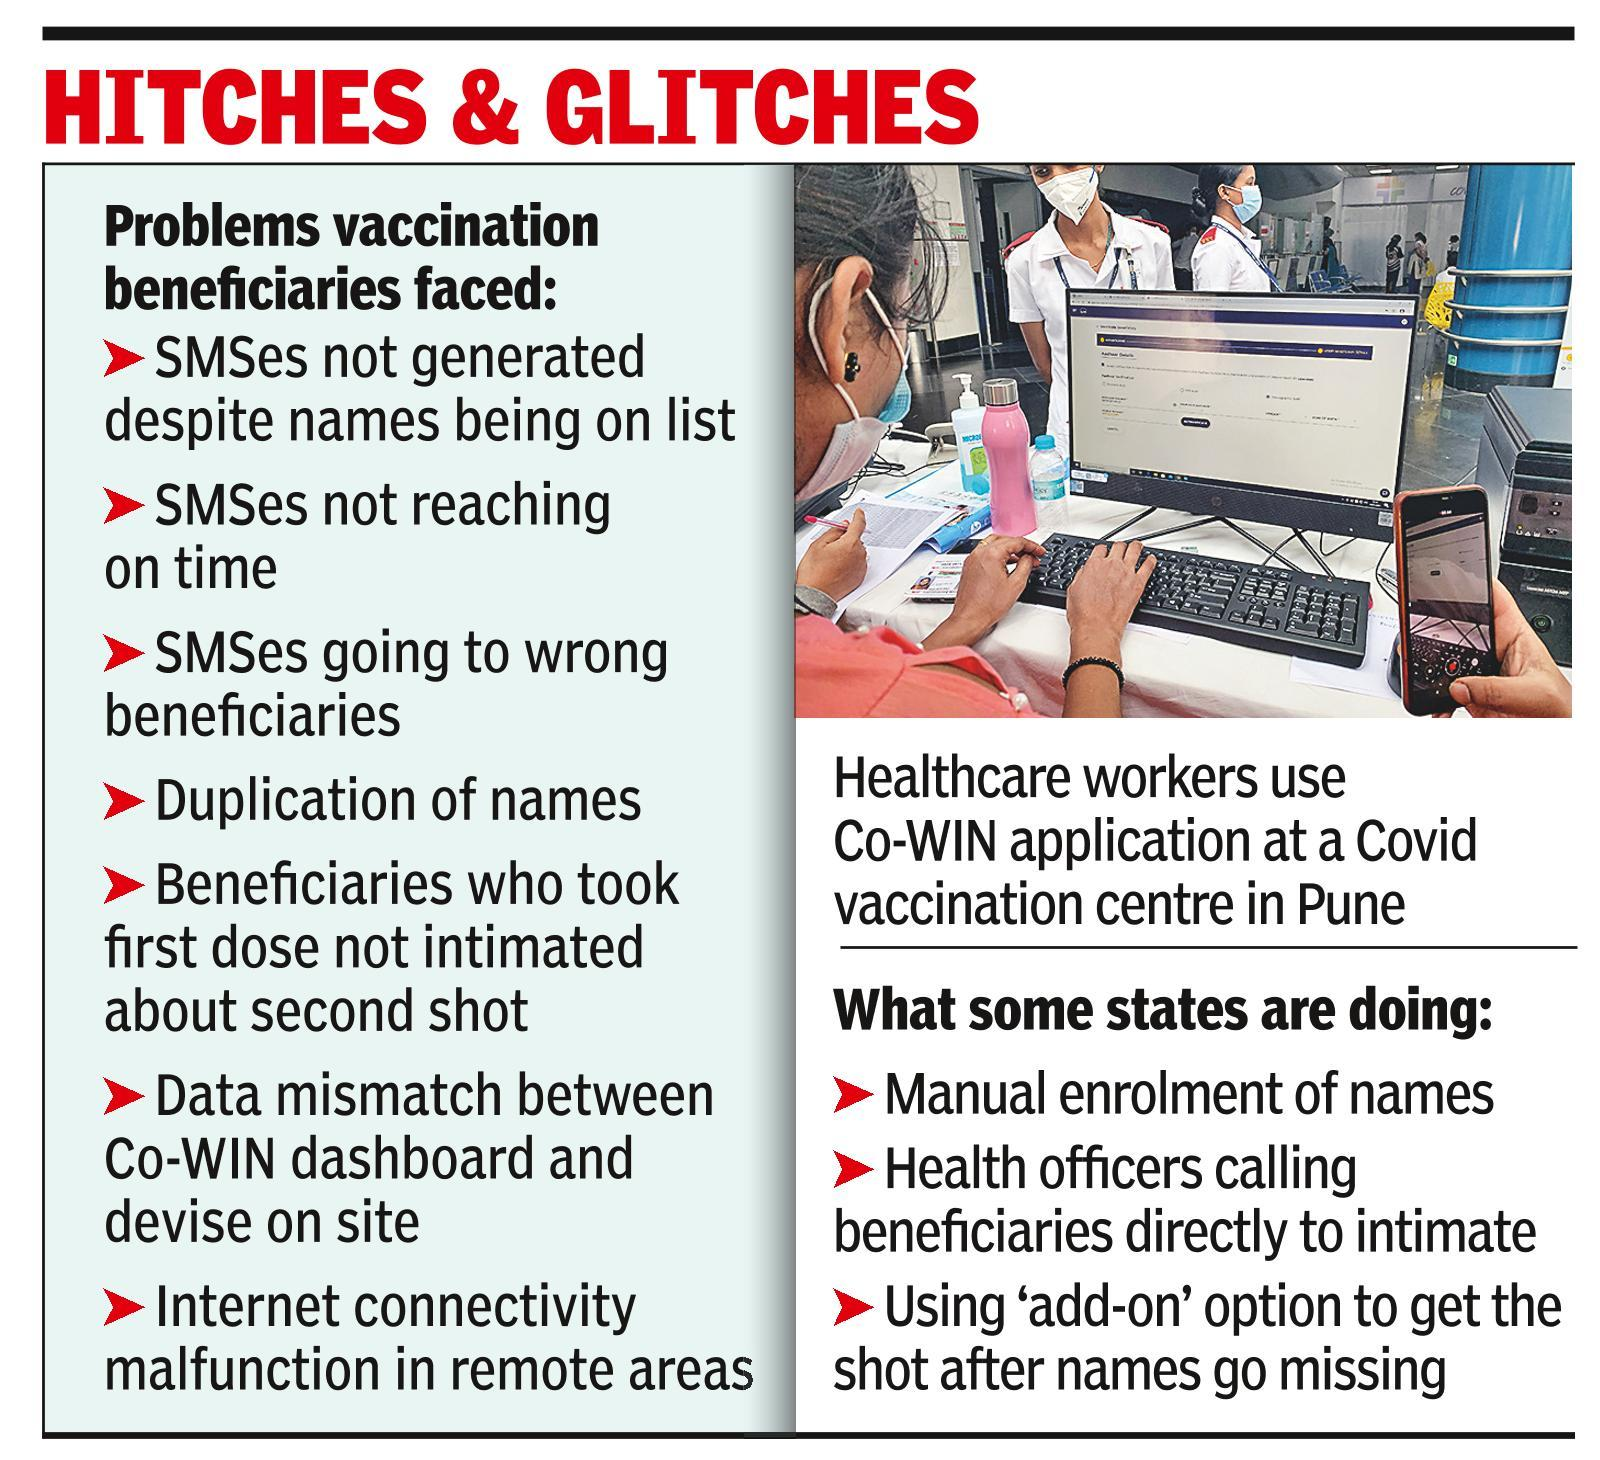 'For morning vaccination slot, got SMS alert later that noon'